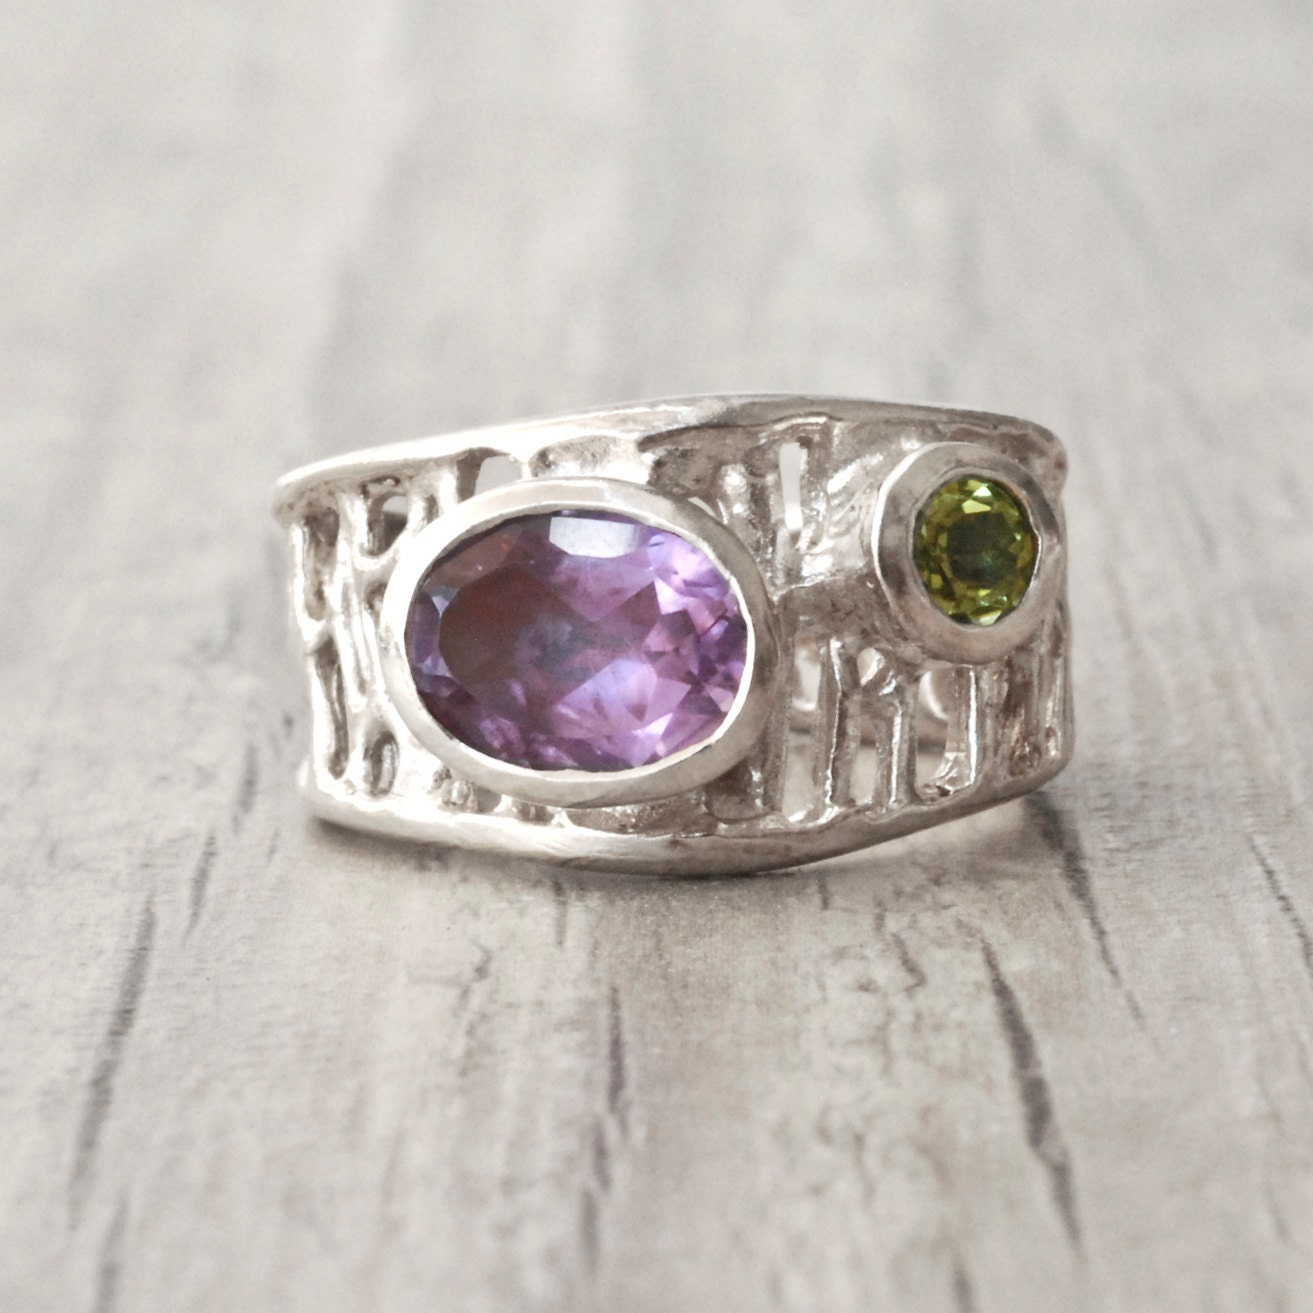 amethyst ring sterling silver wide band amethyst and peridot. Black Bedroom Furniture Sets. Home Design Ideas